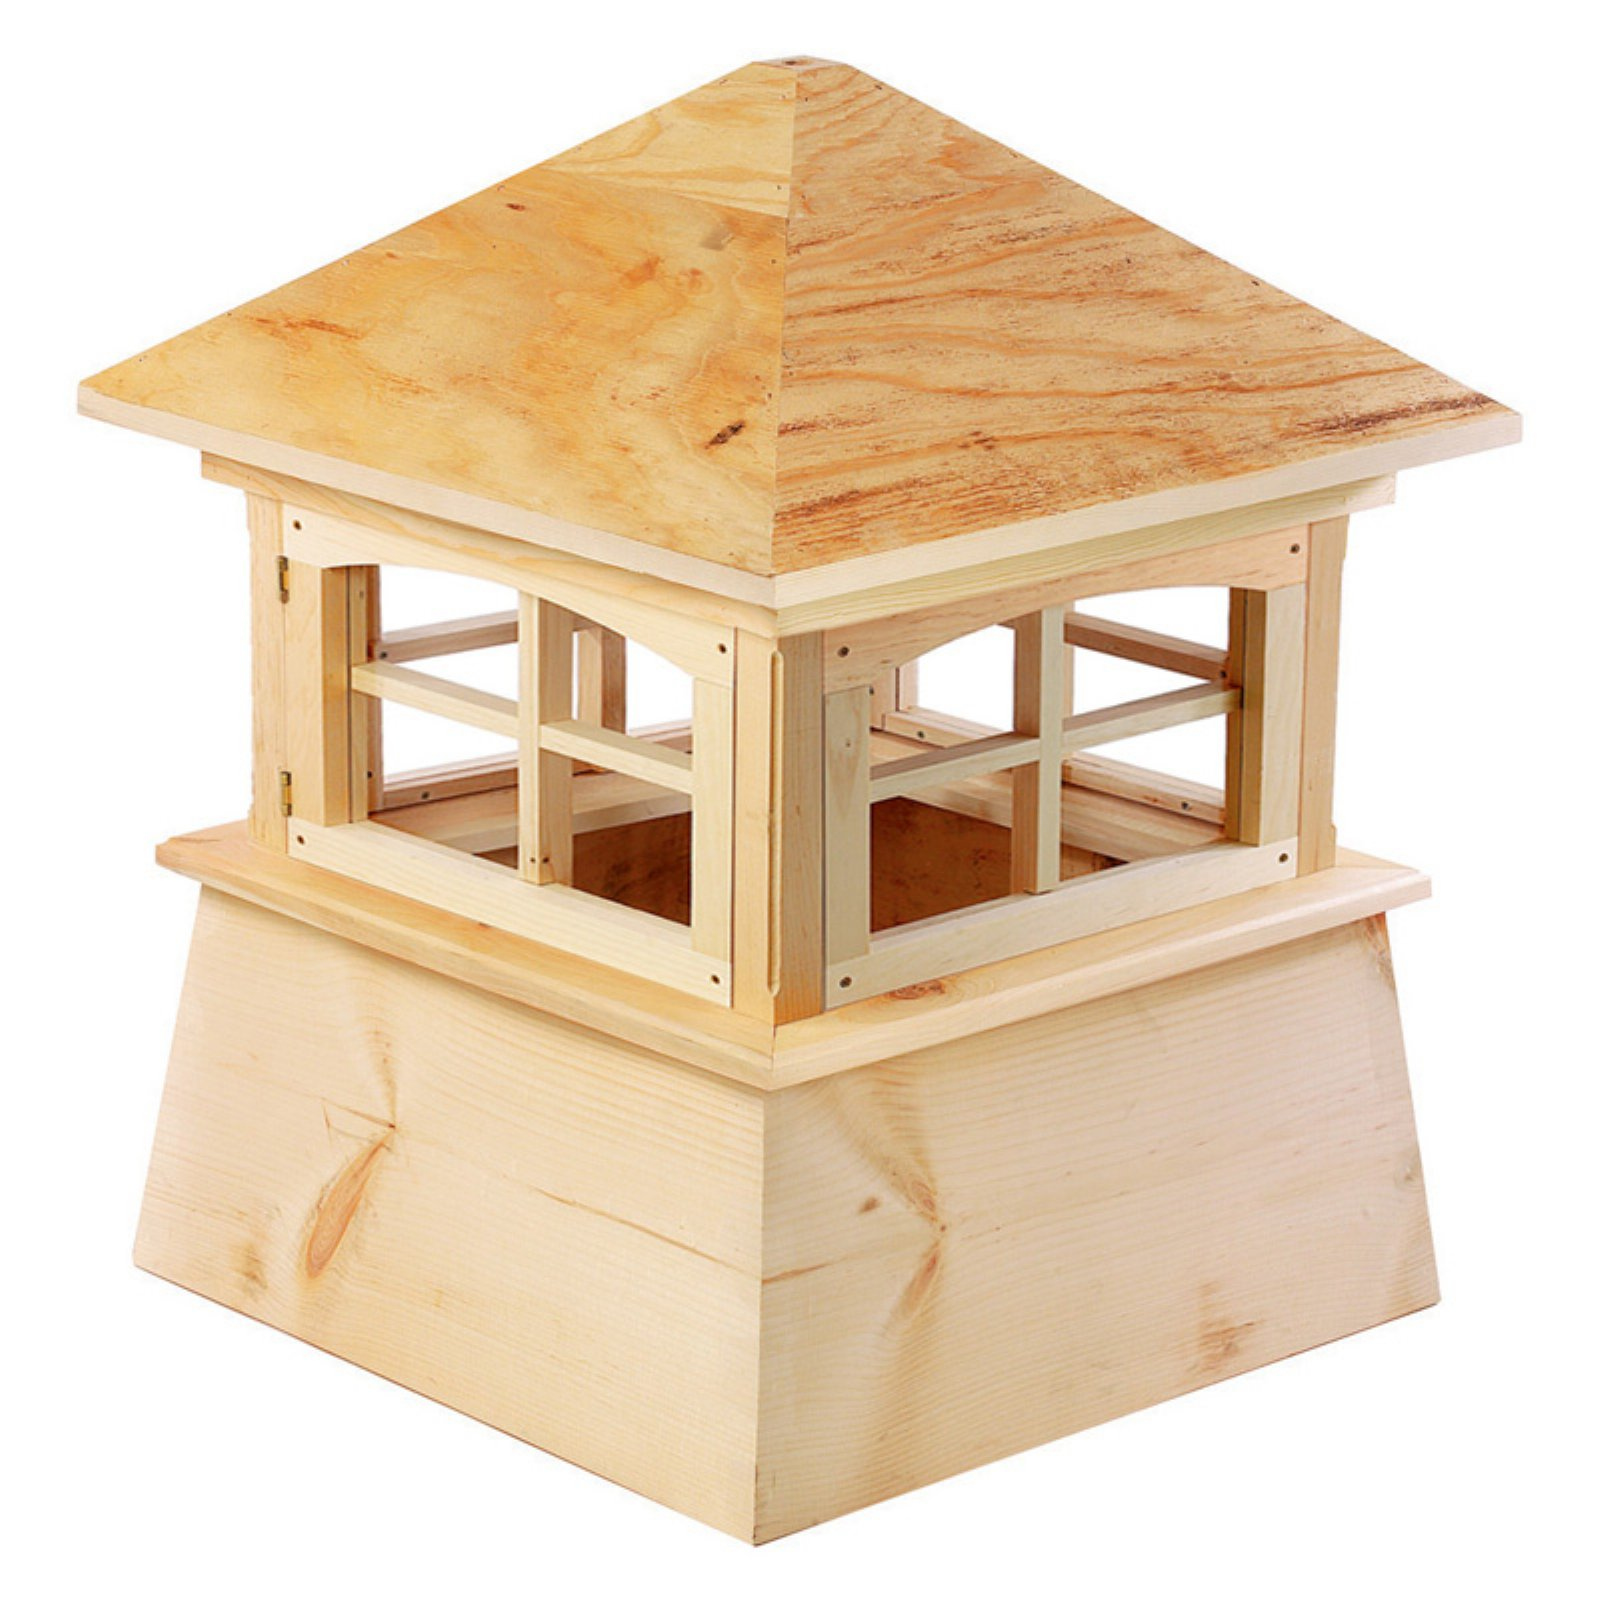 Brookfield Cupola 84 inches x 118 inches by Good Directions